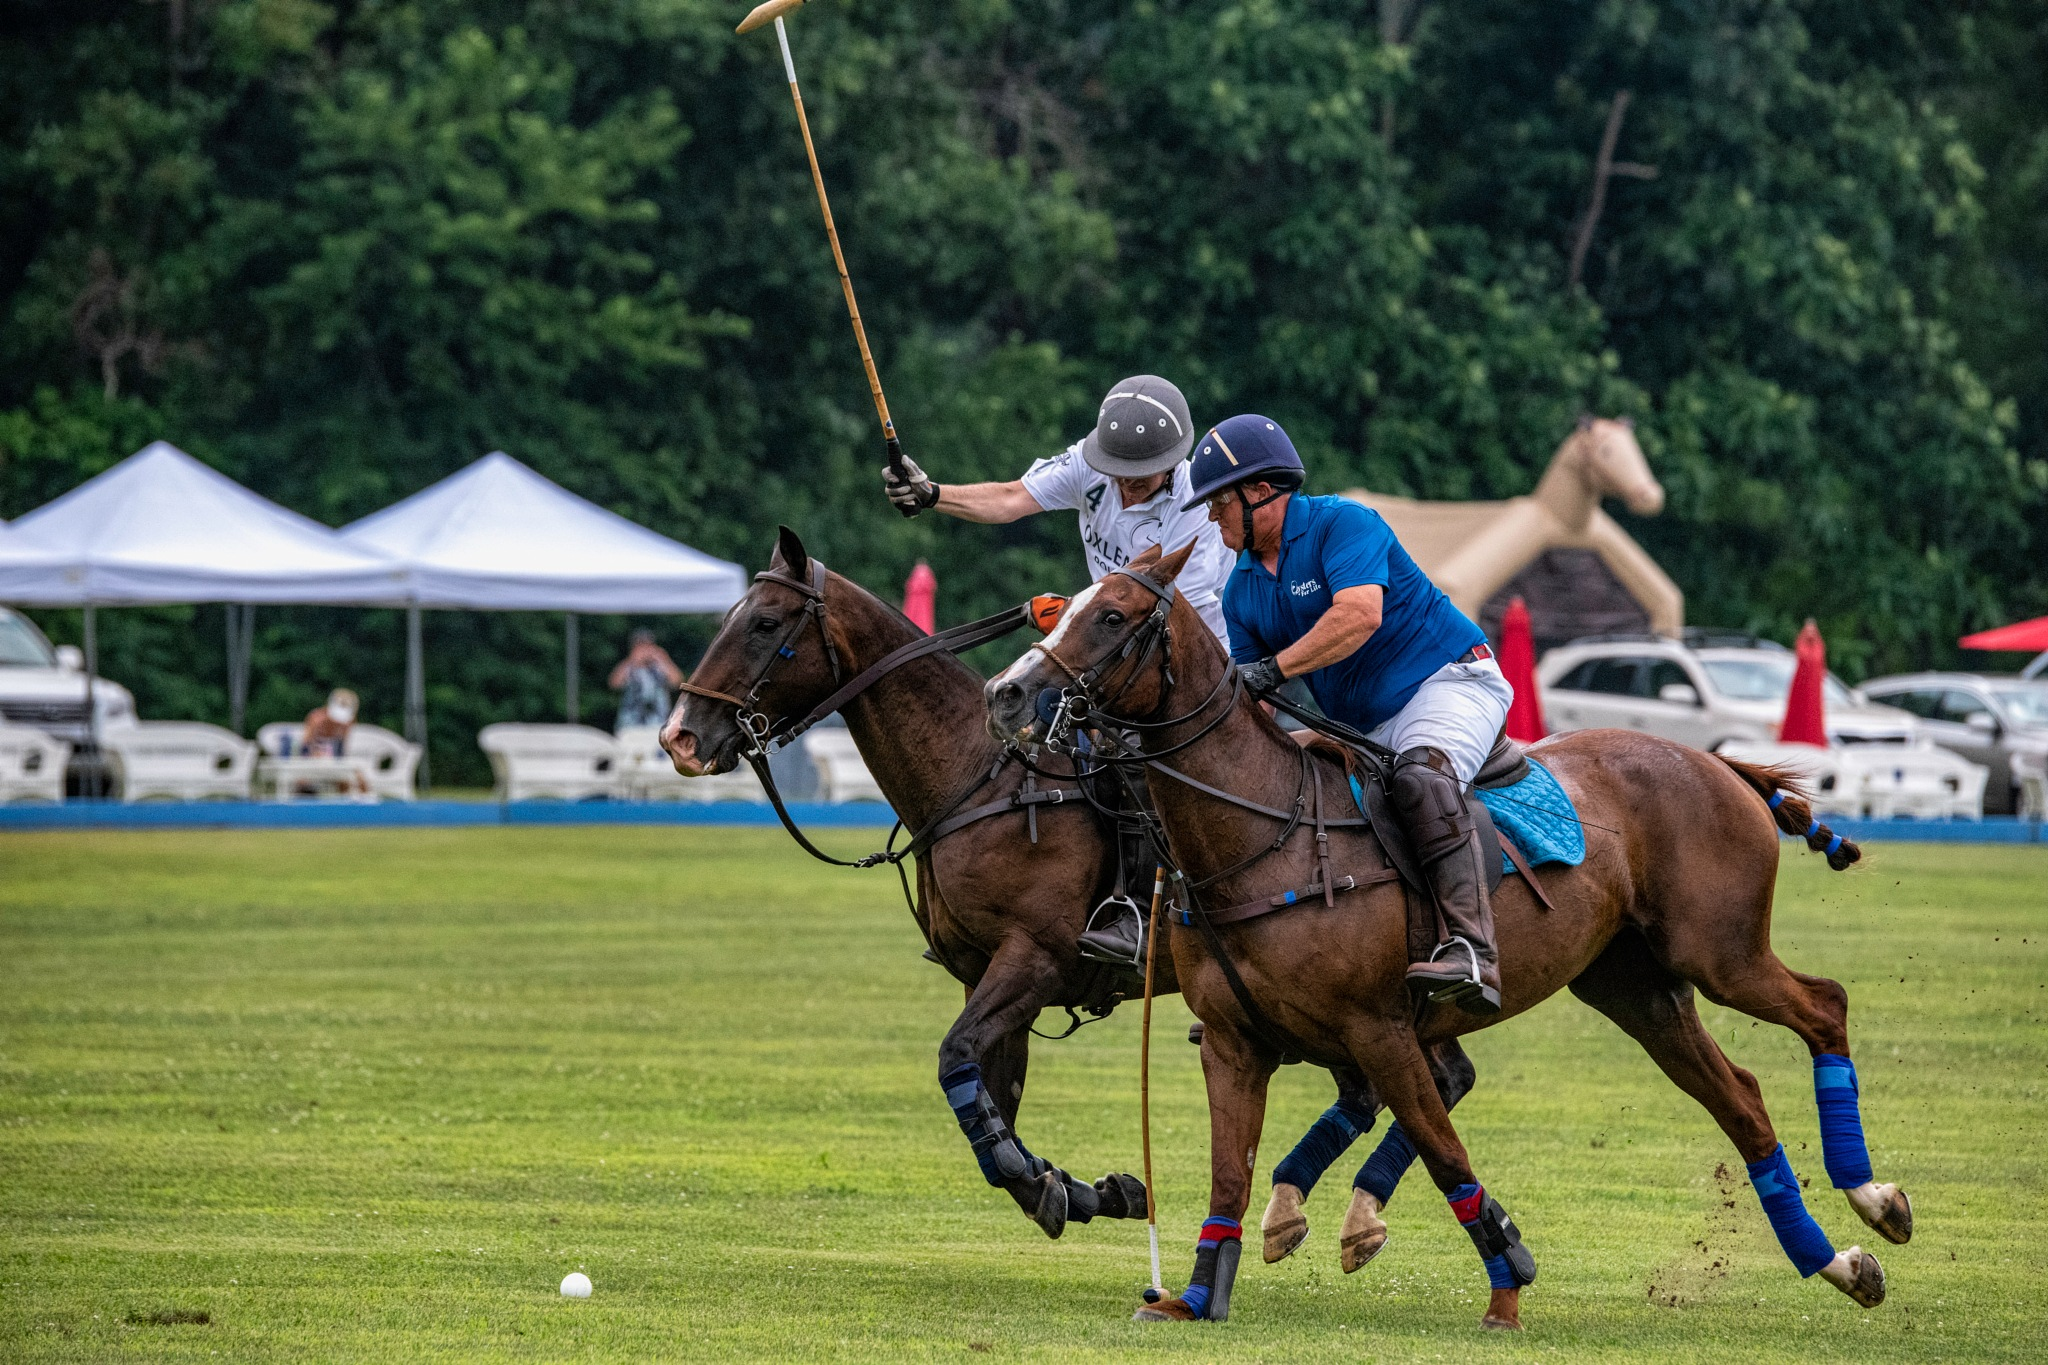 Polo 19 by JohnEllingson